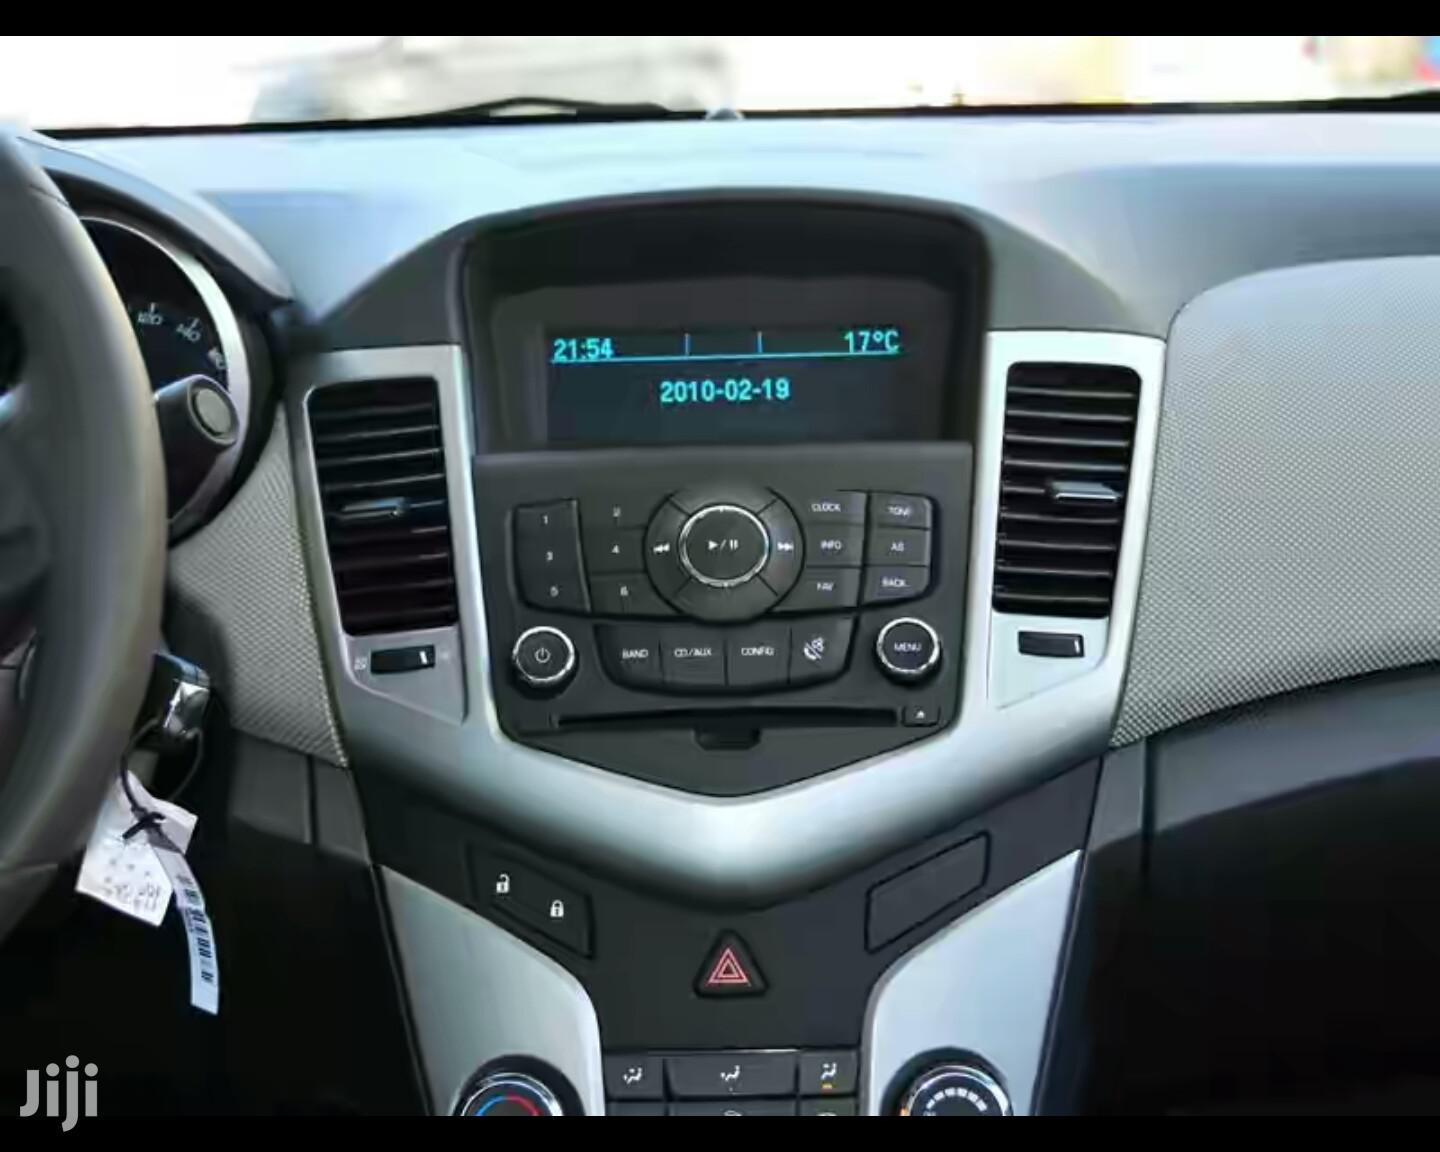 Chevrolet Cruze 2012 Android Dvd Player